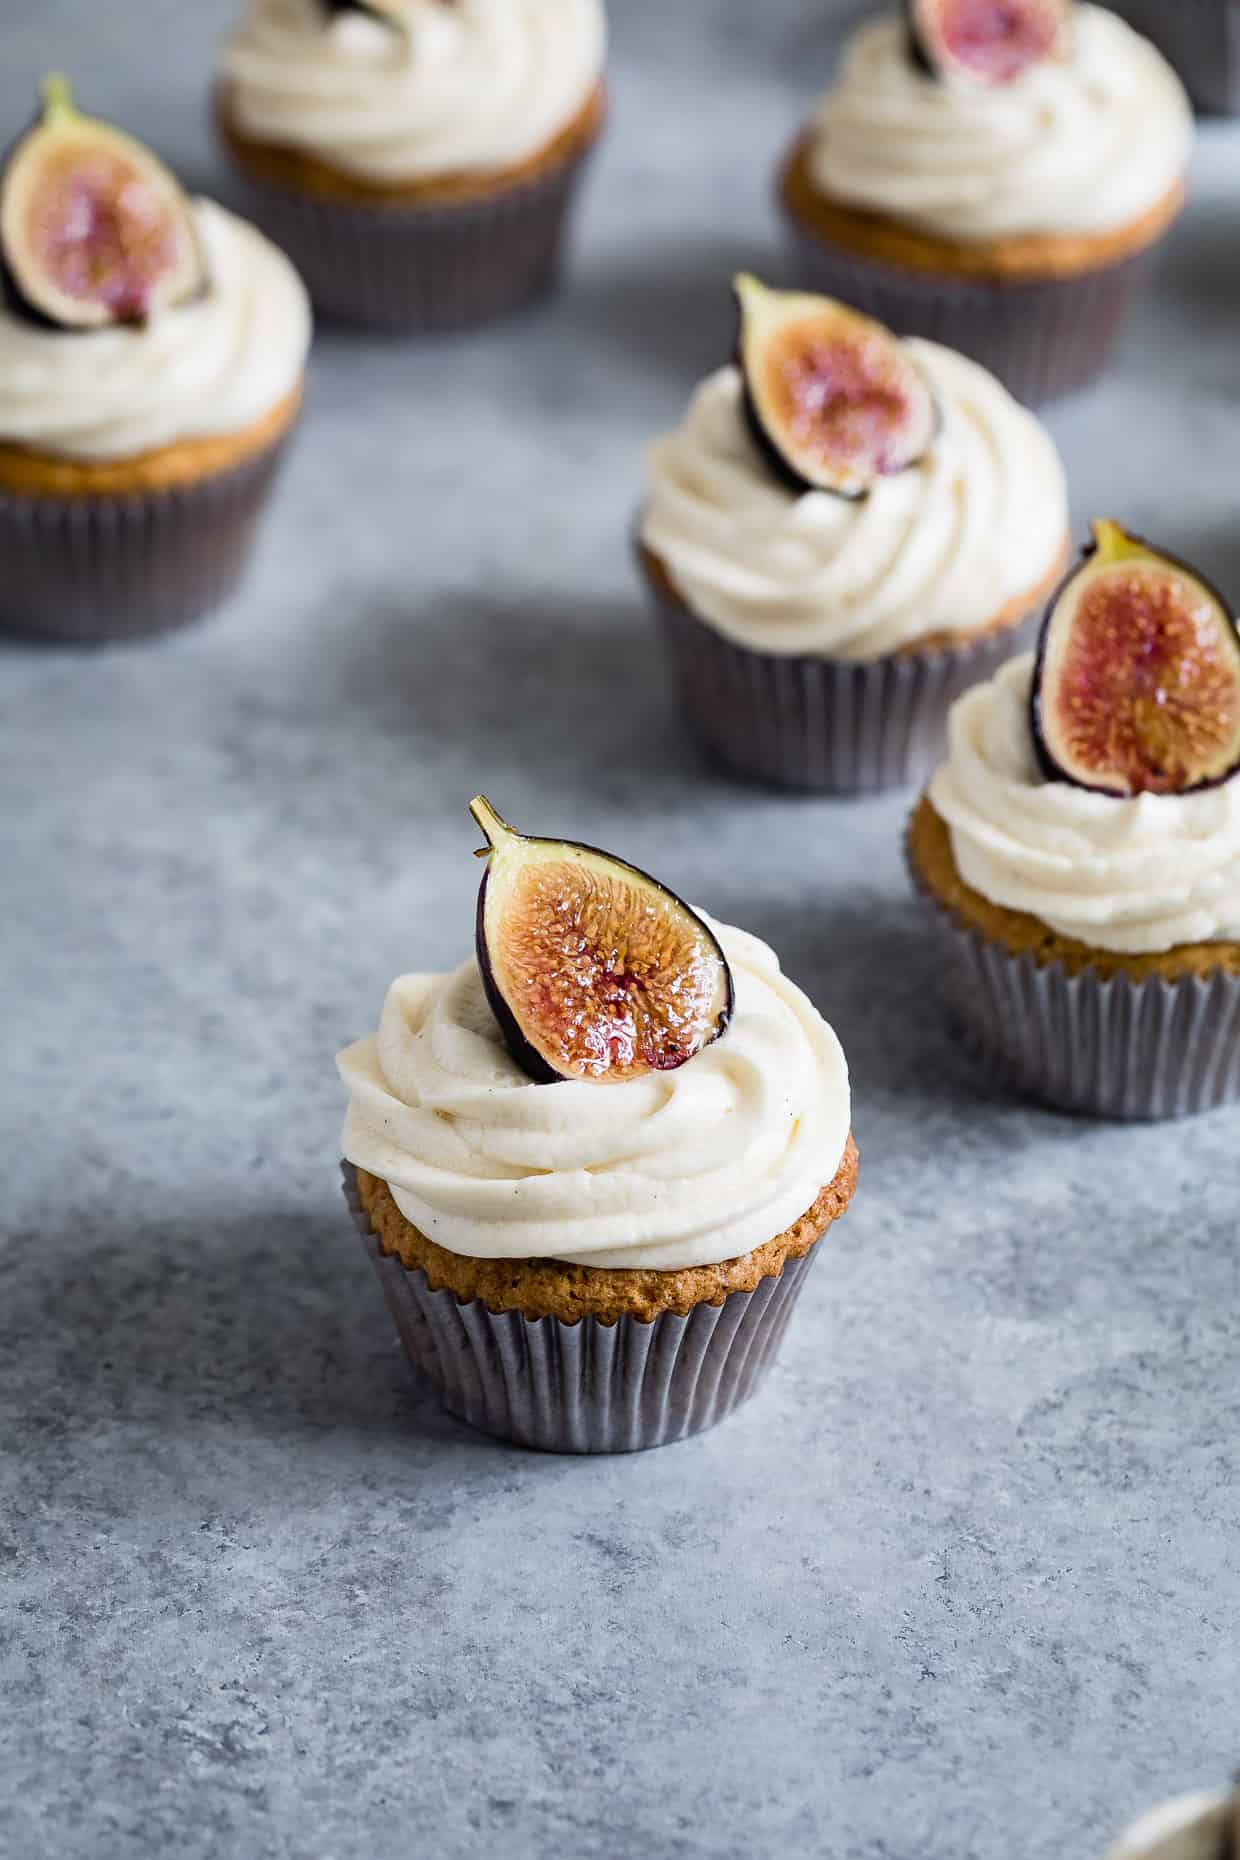 Gluten-Free Vanilla Cupcakes with Goat Cheese Frosting & Brûléed Figs